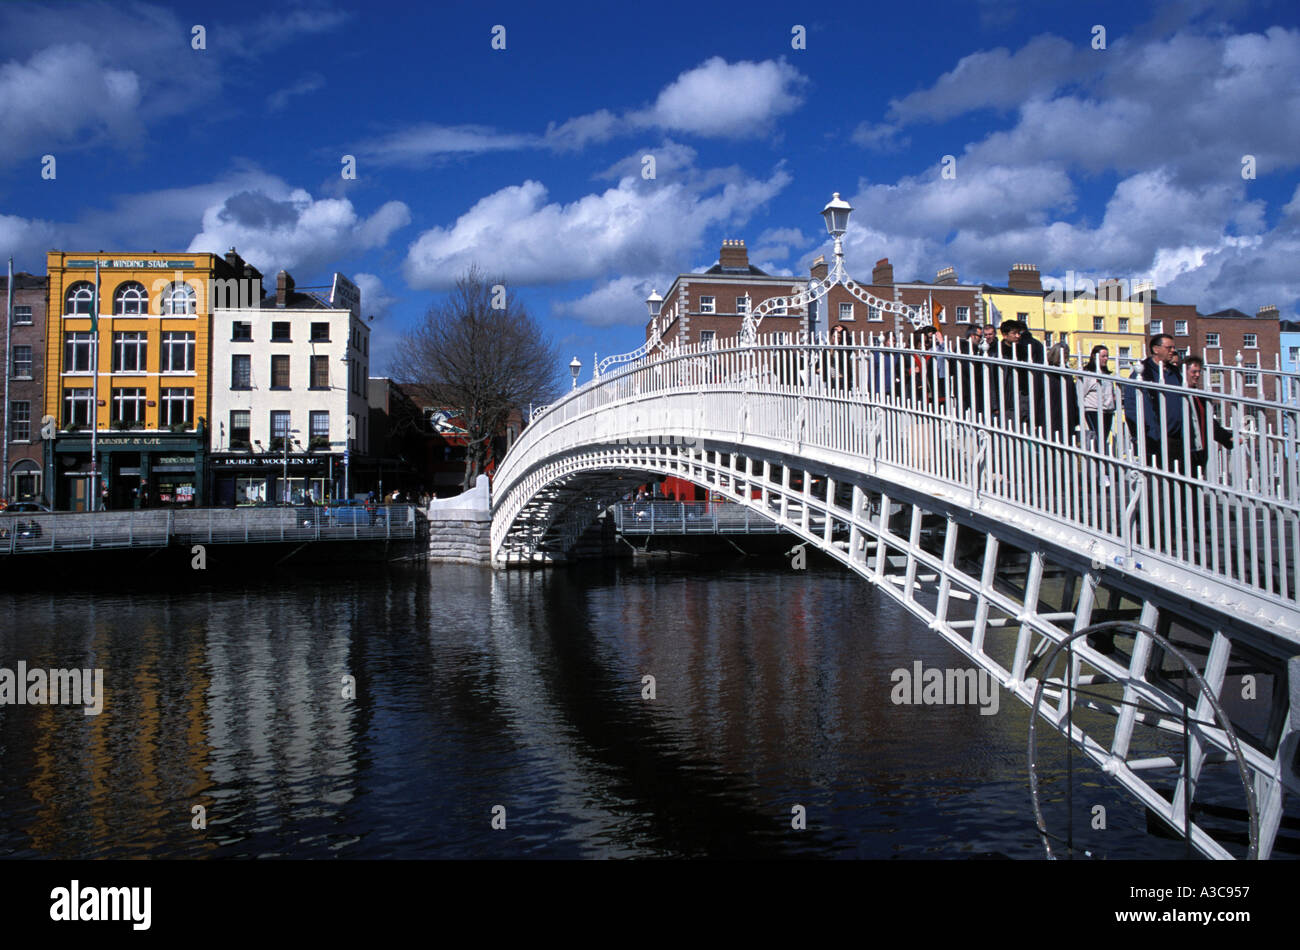 The Ha'penny Bridge on the River Liffey Dublin Ireland - Stock Image